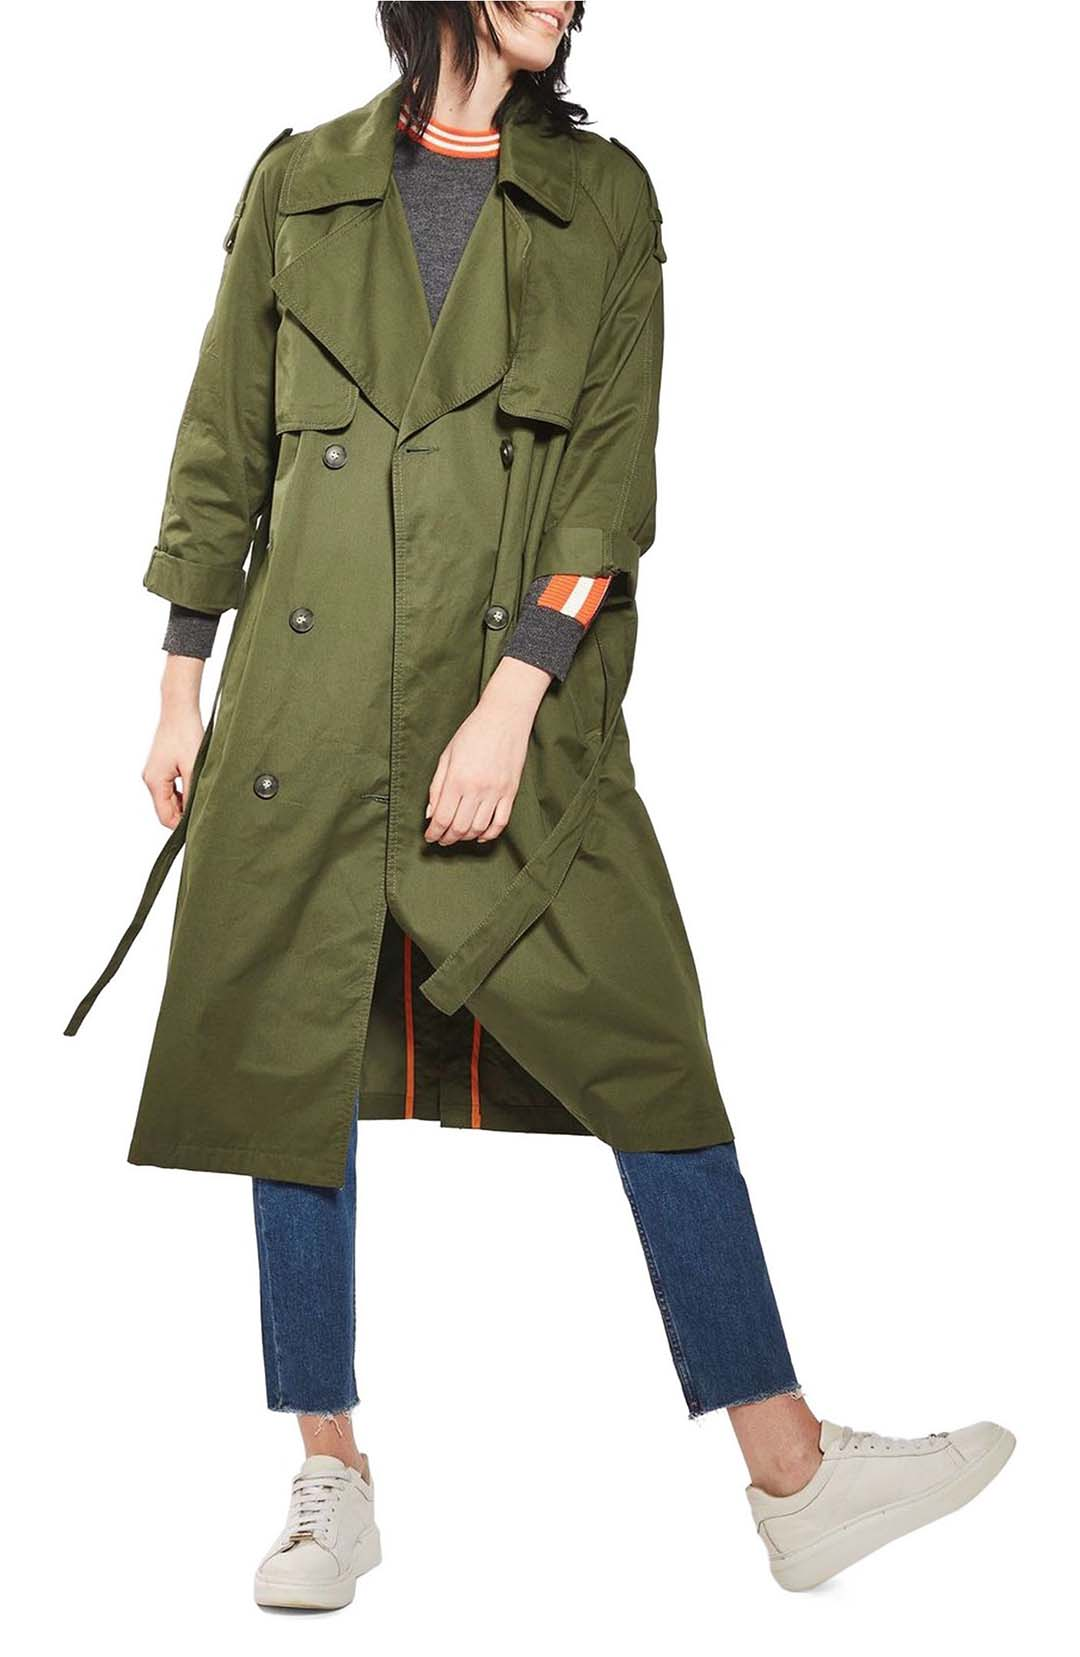 Topshop Embroidered Trench Coat Olive Multi trench coats top spring